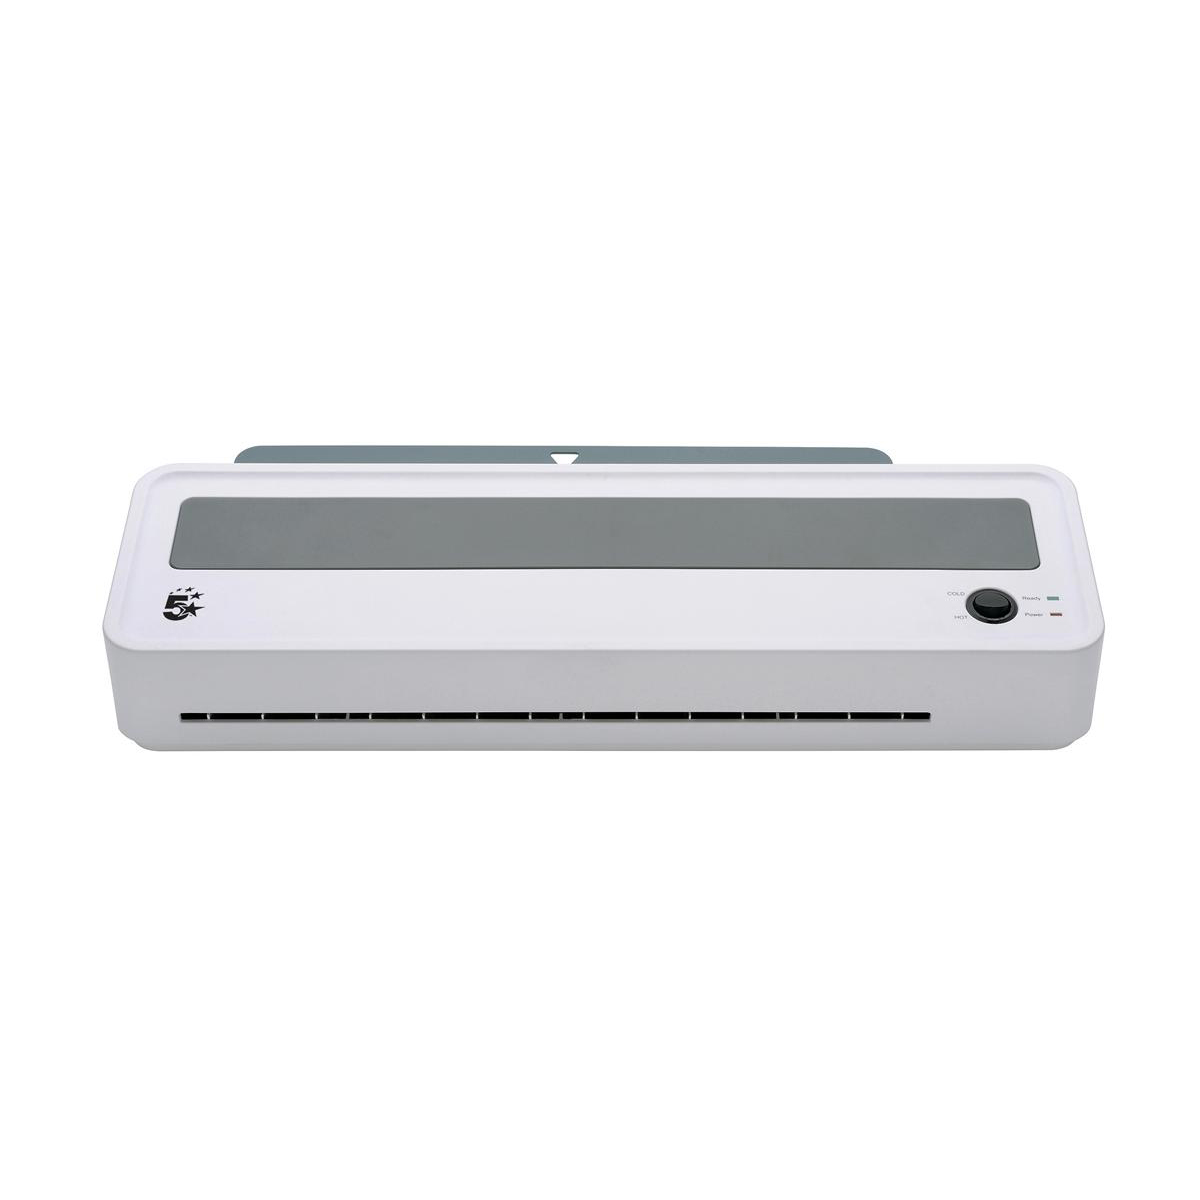 Laminating Machines 5 Star Office Hot and Cold A3 Laminator Up to 2x125micron Pouches